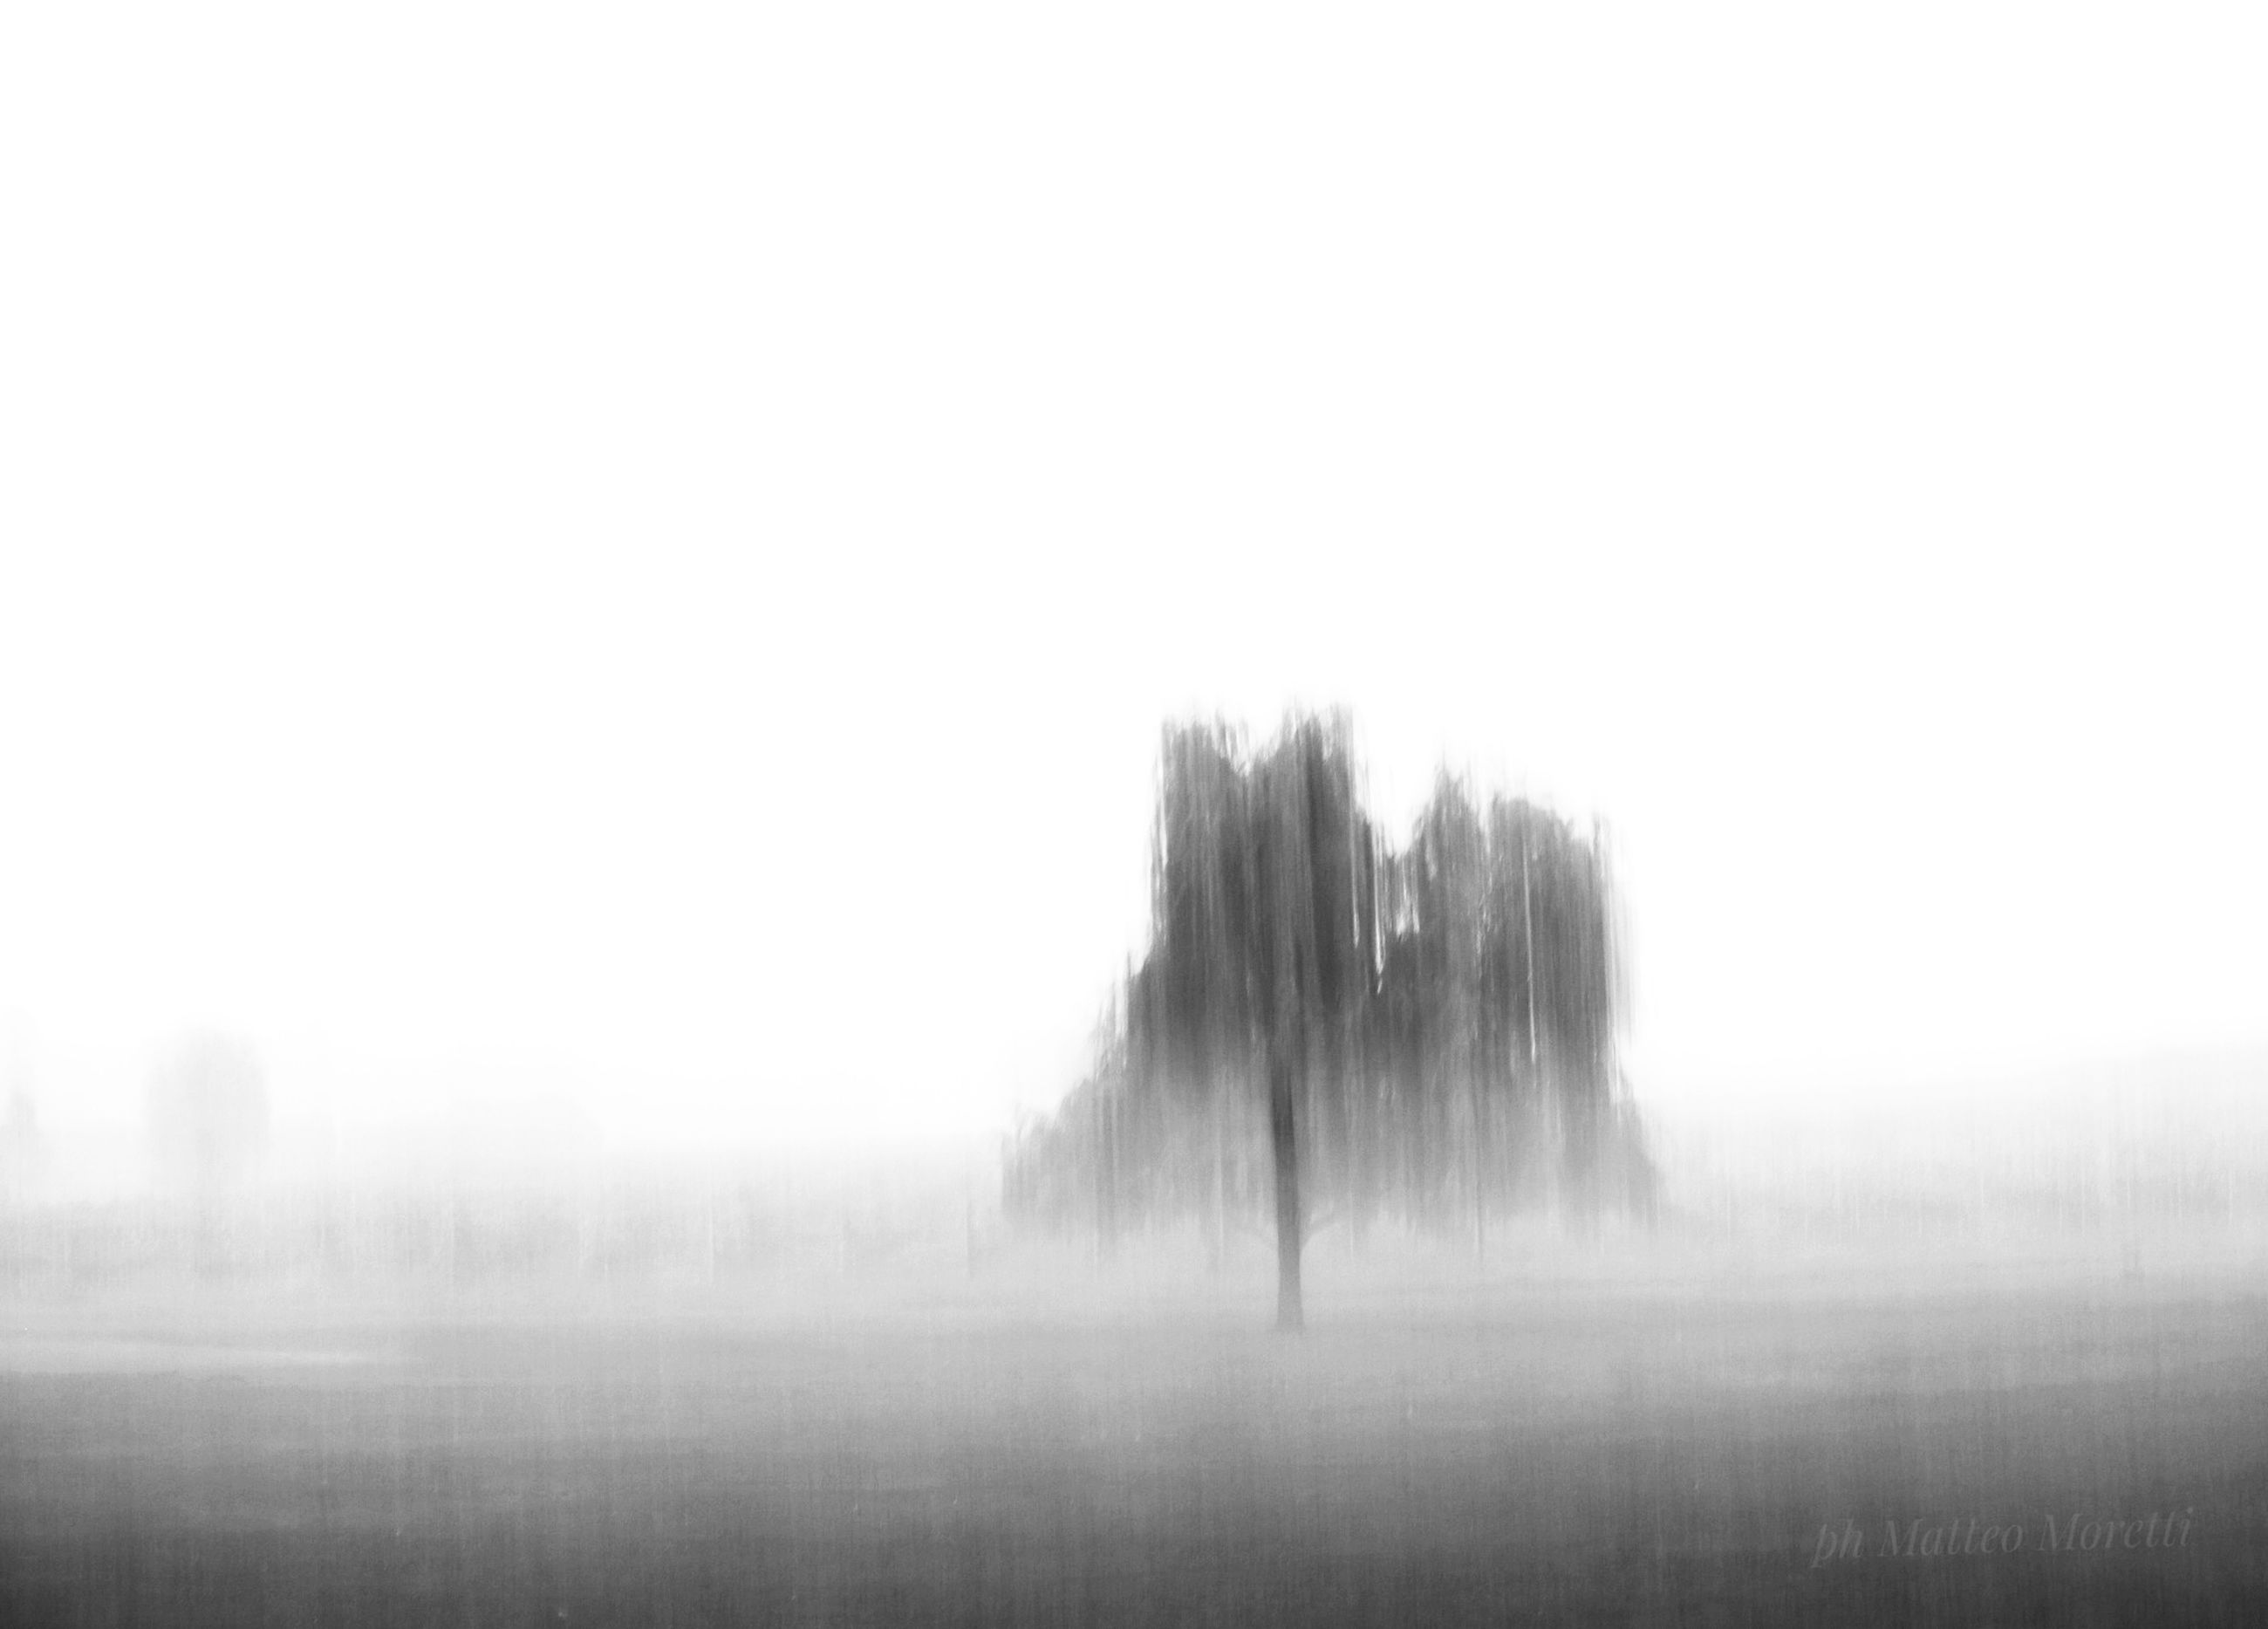 fog, sky, tranquility, tranquil scene, tree, beauty in nature, scenics - nature, no people, nature, environment, landscape, day, plant, land, copy space, field, non-urban scene, idyllic, outdoors, hazy